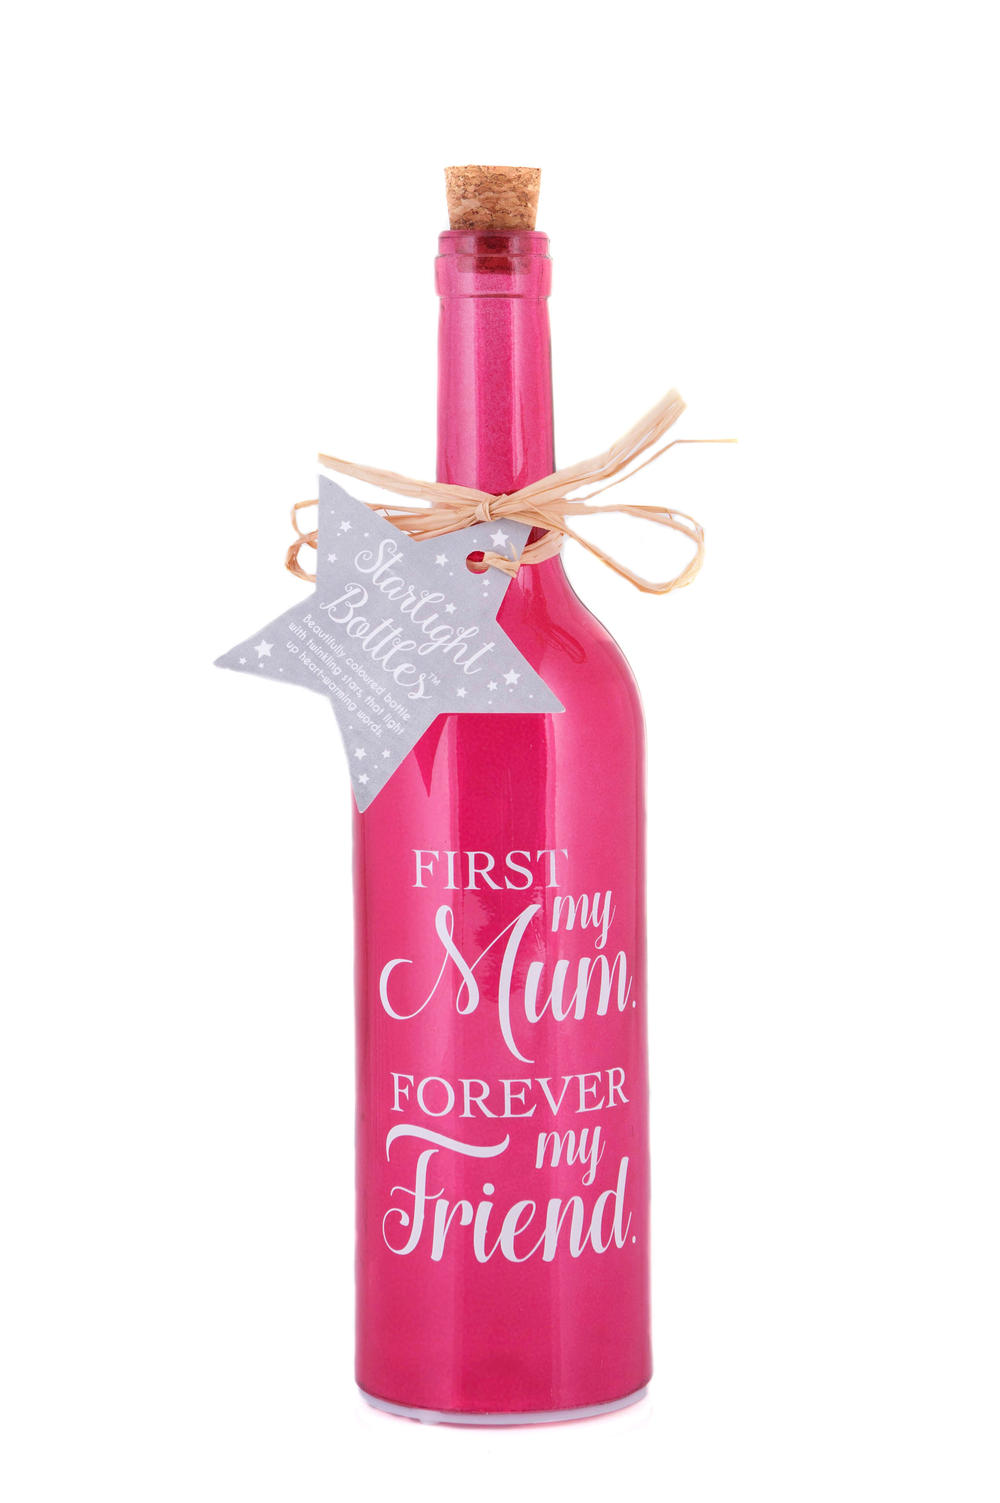 Mum My Friend Starlight Bottle Glass Light Up Sentimental Message Bottles Gift